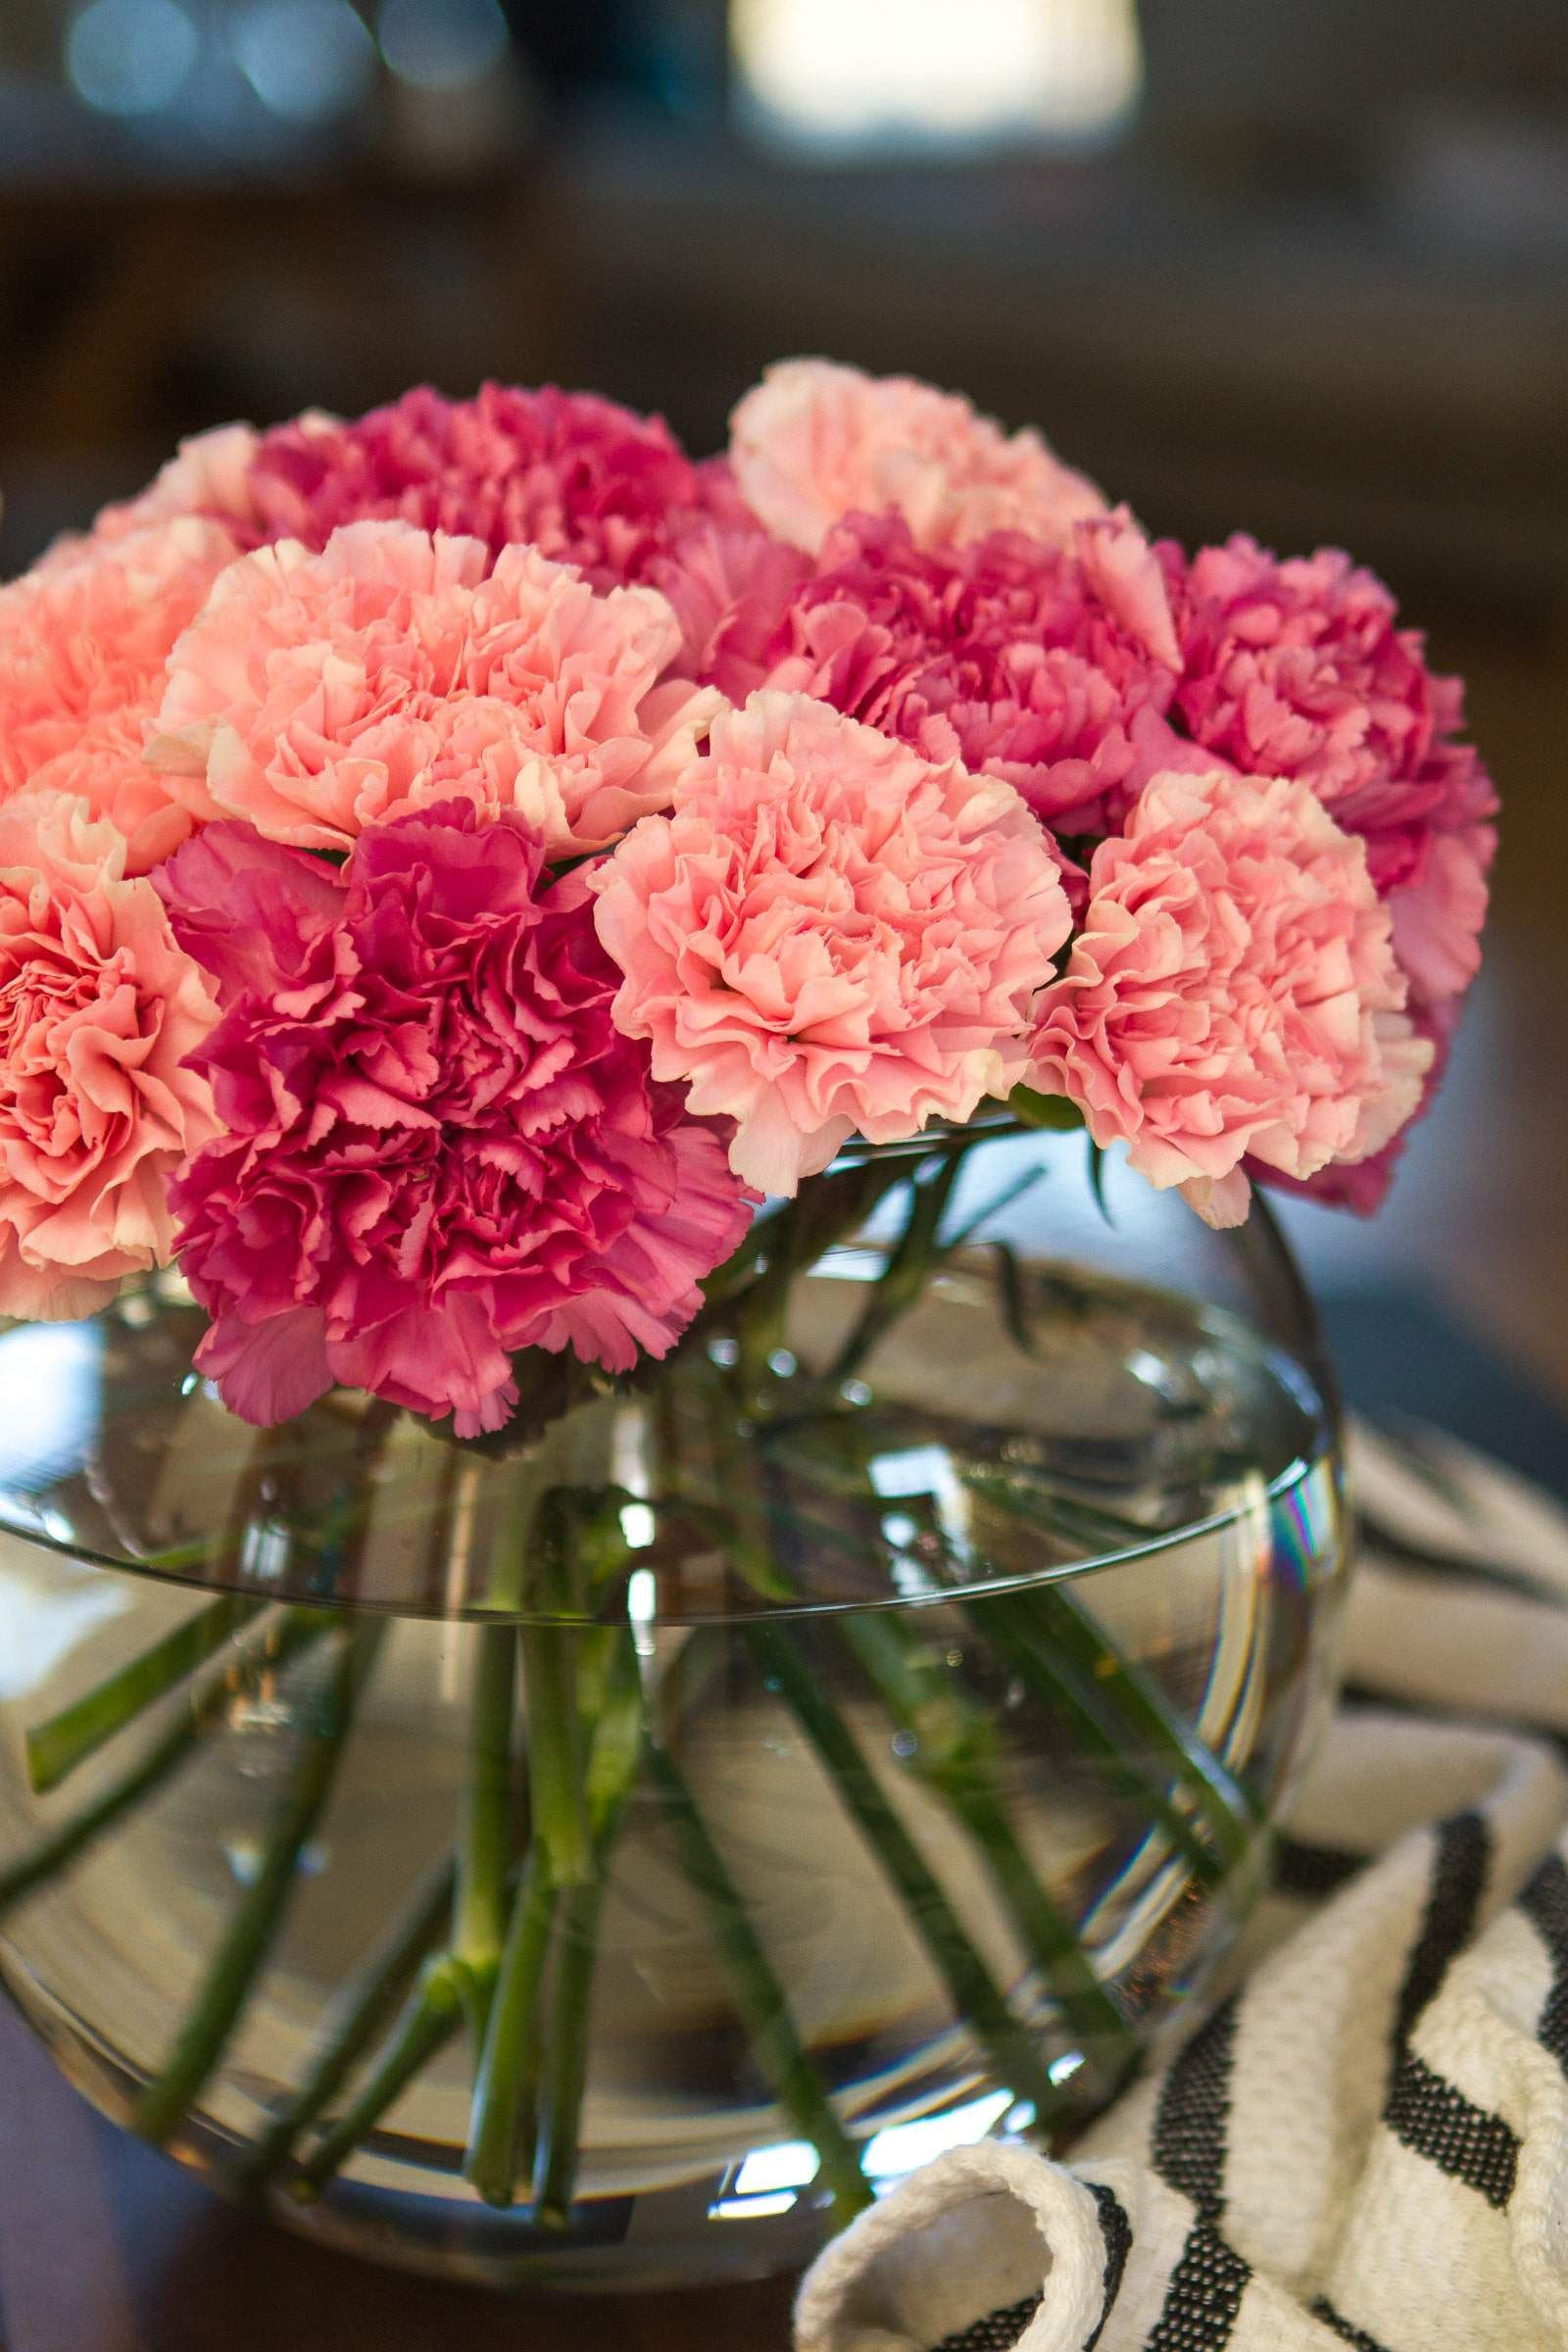 Simple Carnation Flower Arrangement This Stunning Diy Carnation Flower Arrangement Requires Carnation Flower Pretty Flowers Pictures Flower Arrangements Diy